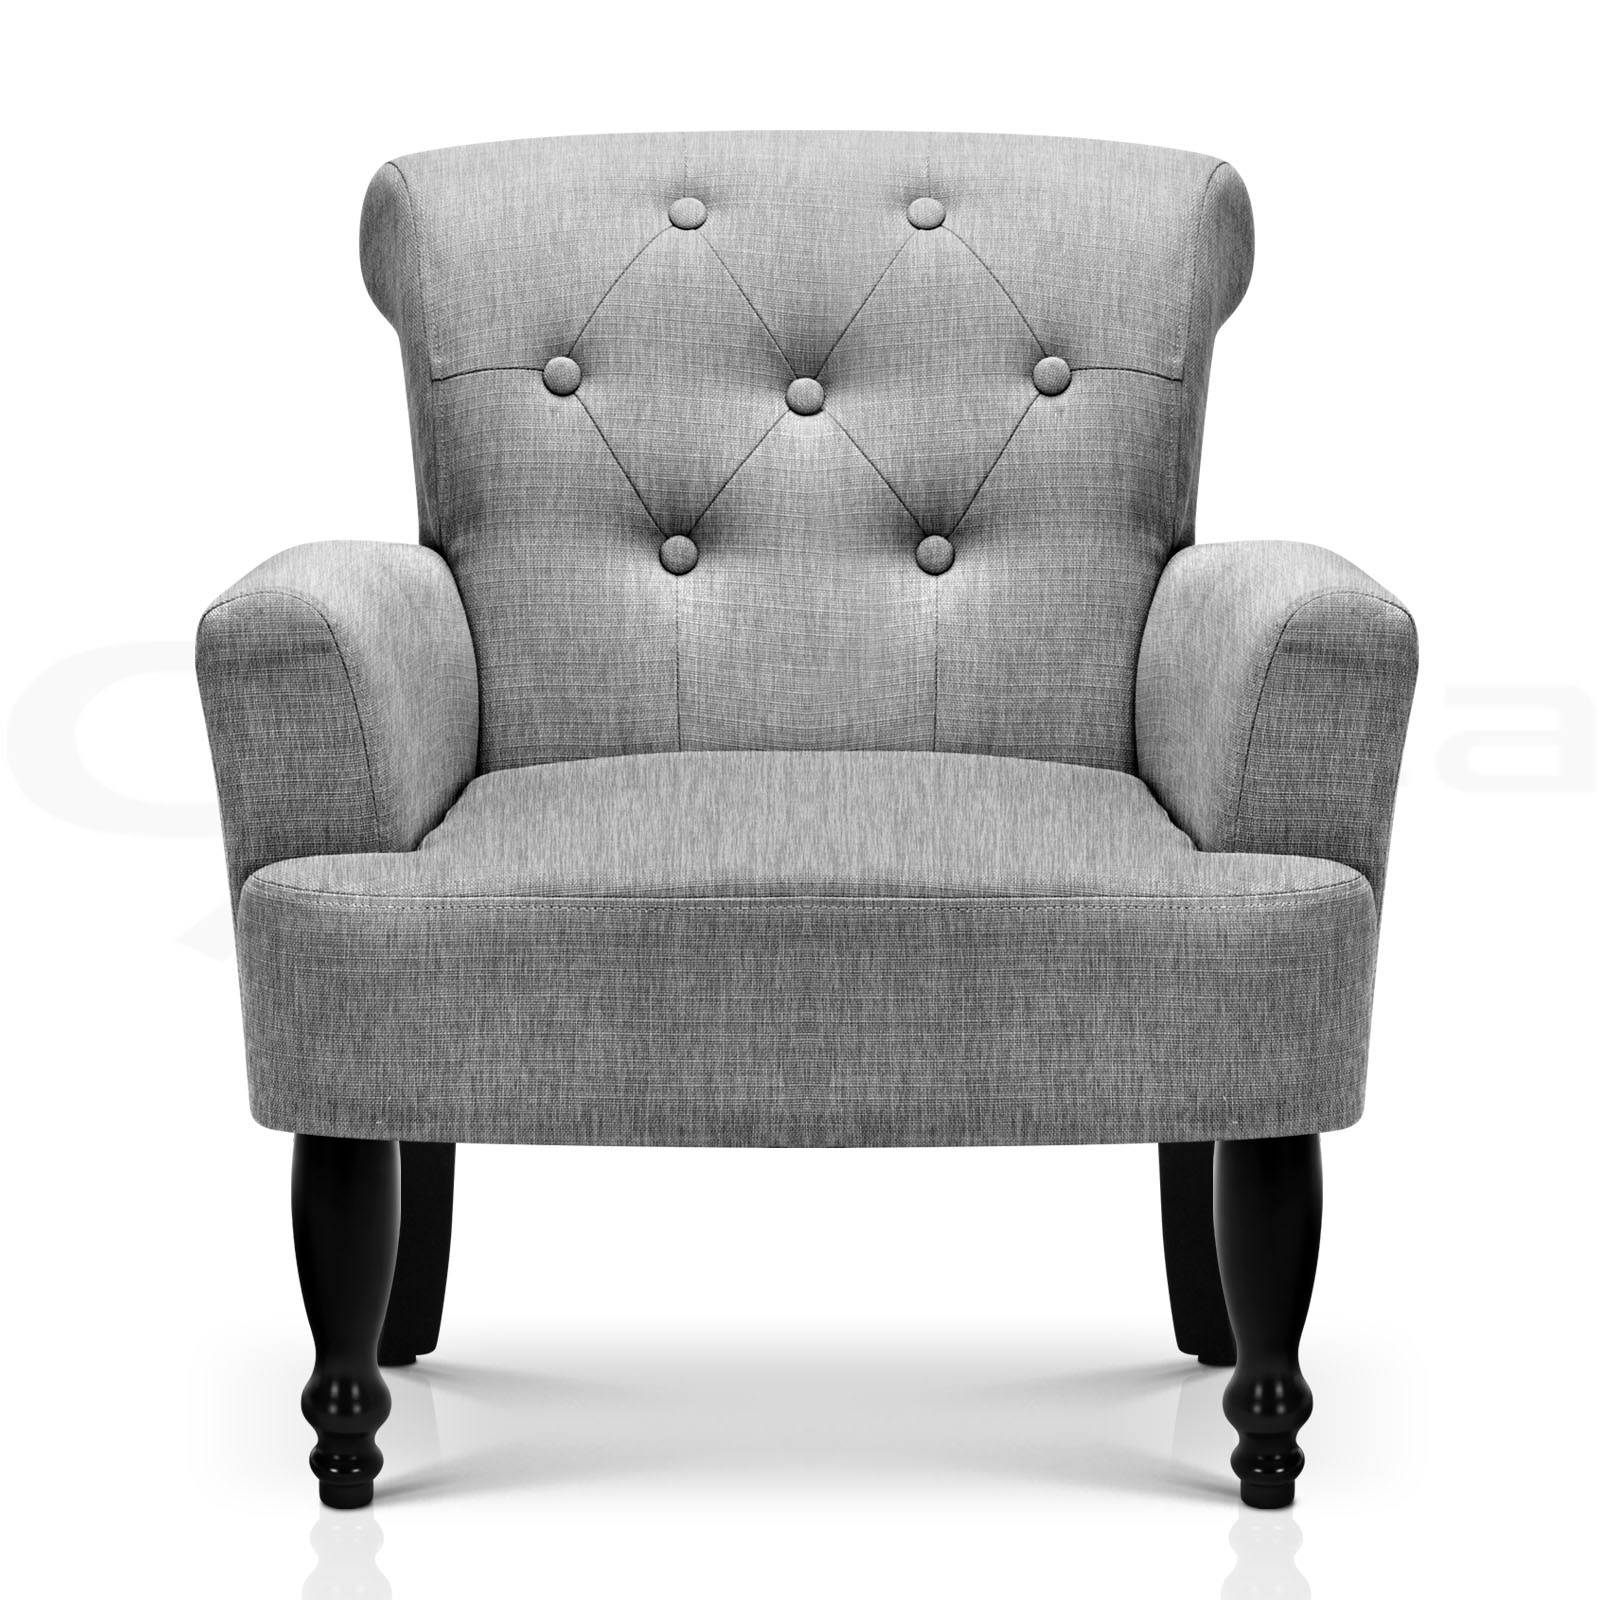 grey wing chair wicker occasional lorraine wingback armchair tub lounge sofa french